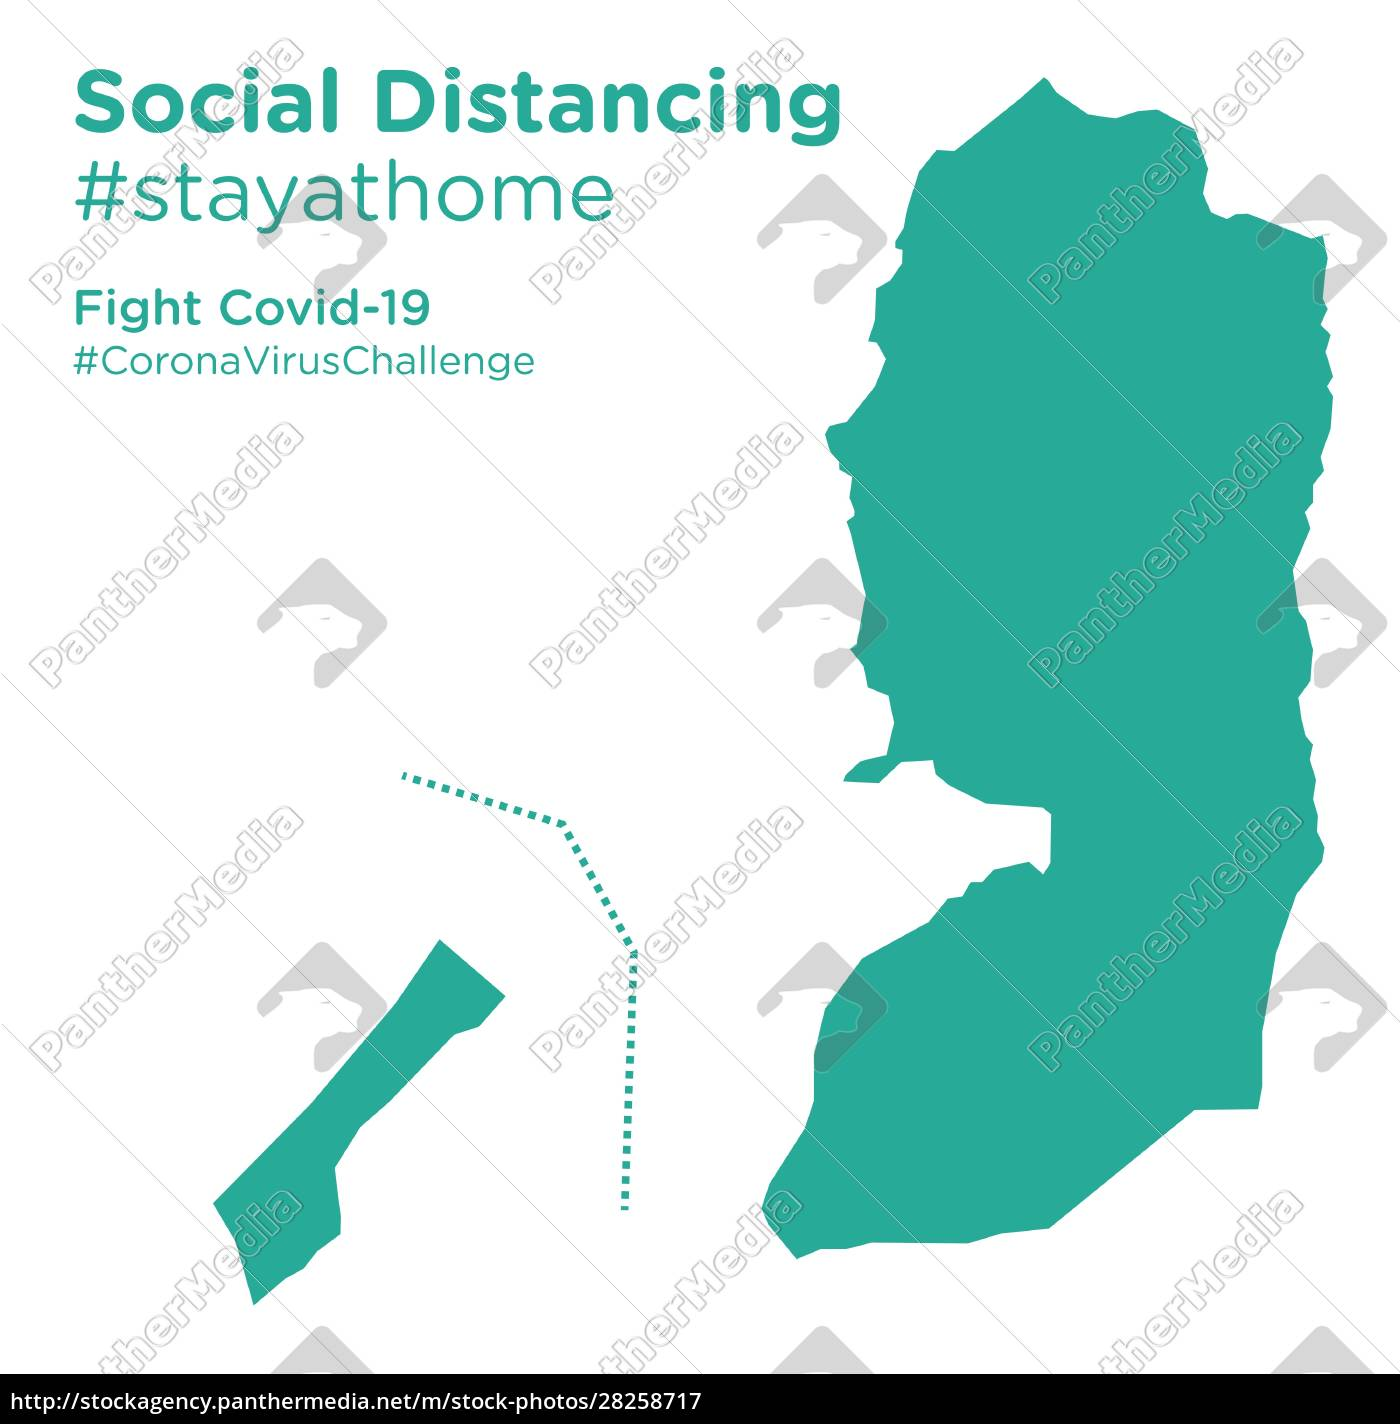 palestine, map, with, social, distancing, stayathome - 28258717